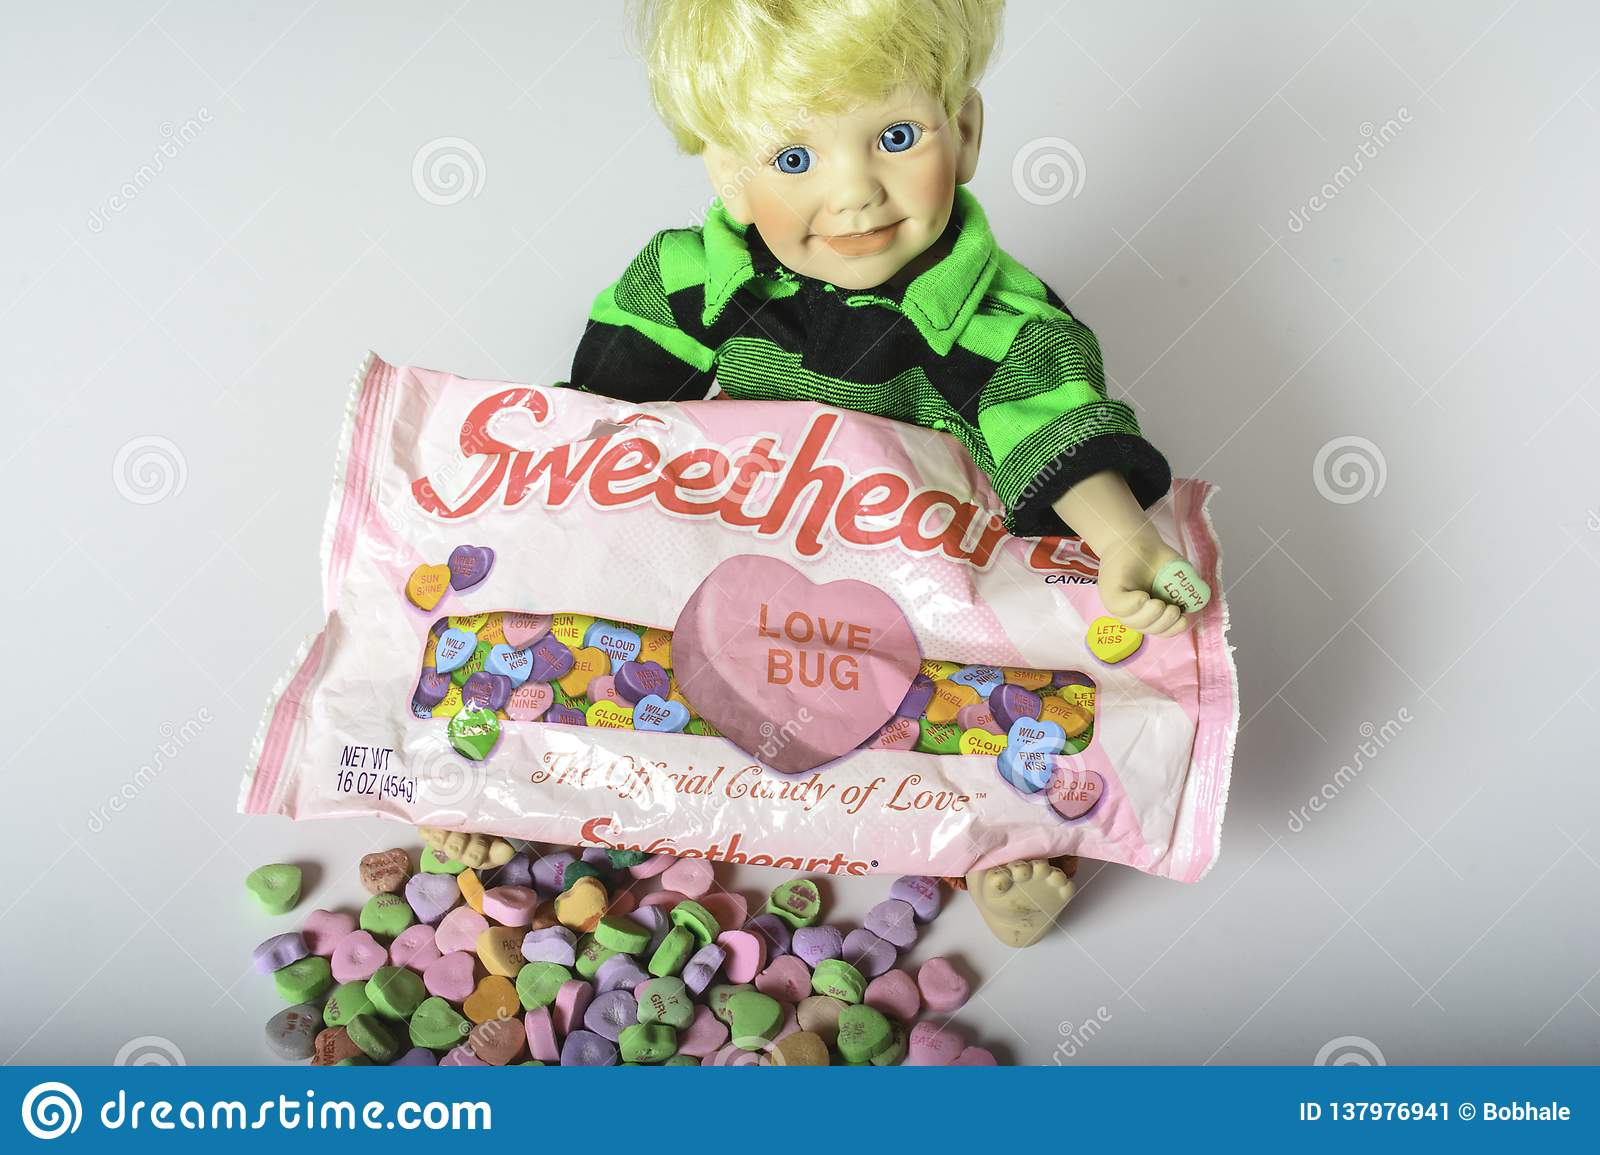 Sweethearts conversation candy hearts